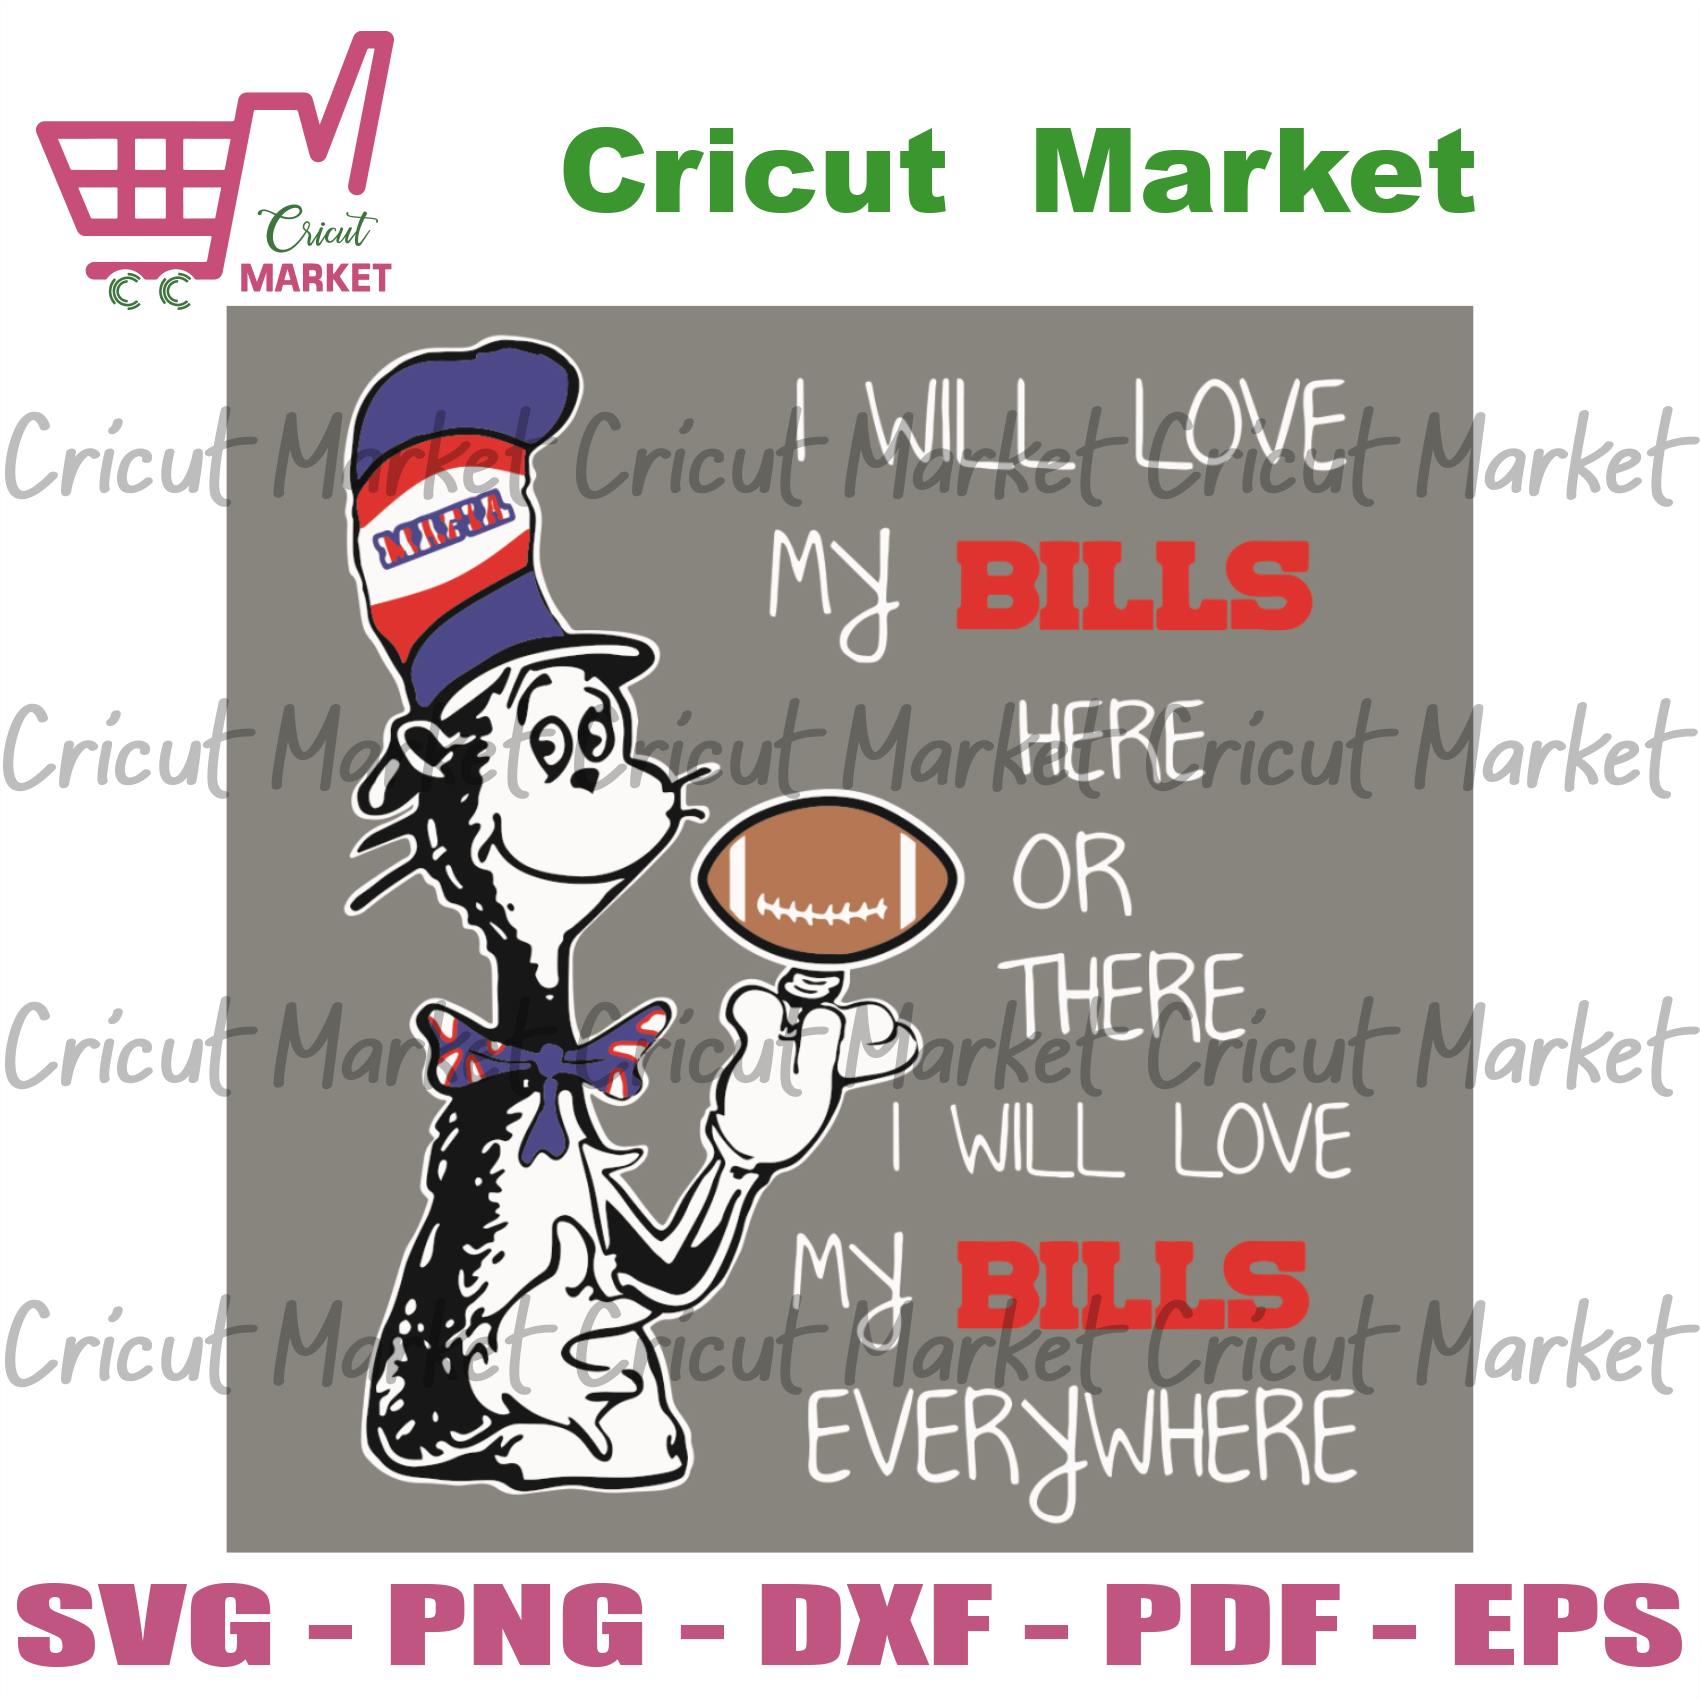 I Will Love My Bills Here Or There I Will Love My Bills Everywhere Svg, Sport Svg, Buffalo Bills Football Team Svg, The Cat In The Hat Svg, Dr Seuss Svg, Dr Seuss Bills Svg, Buffalo Bills Fan